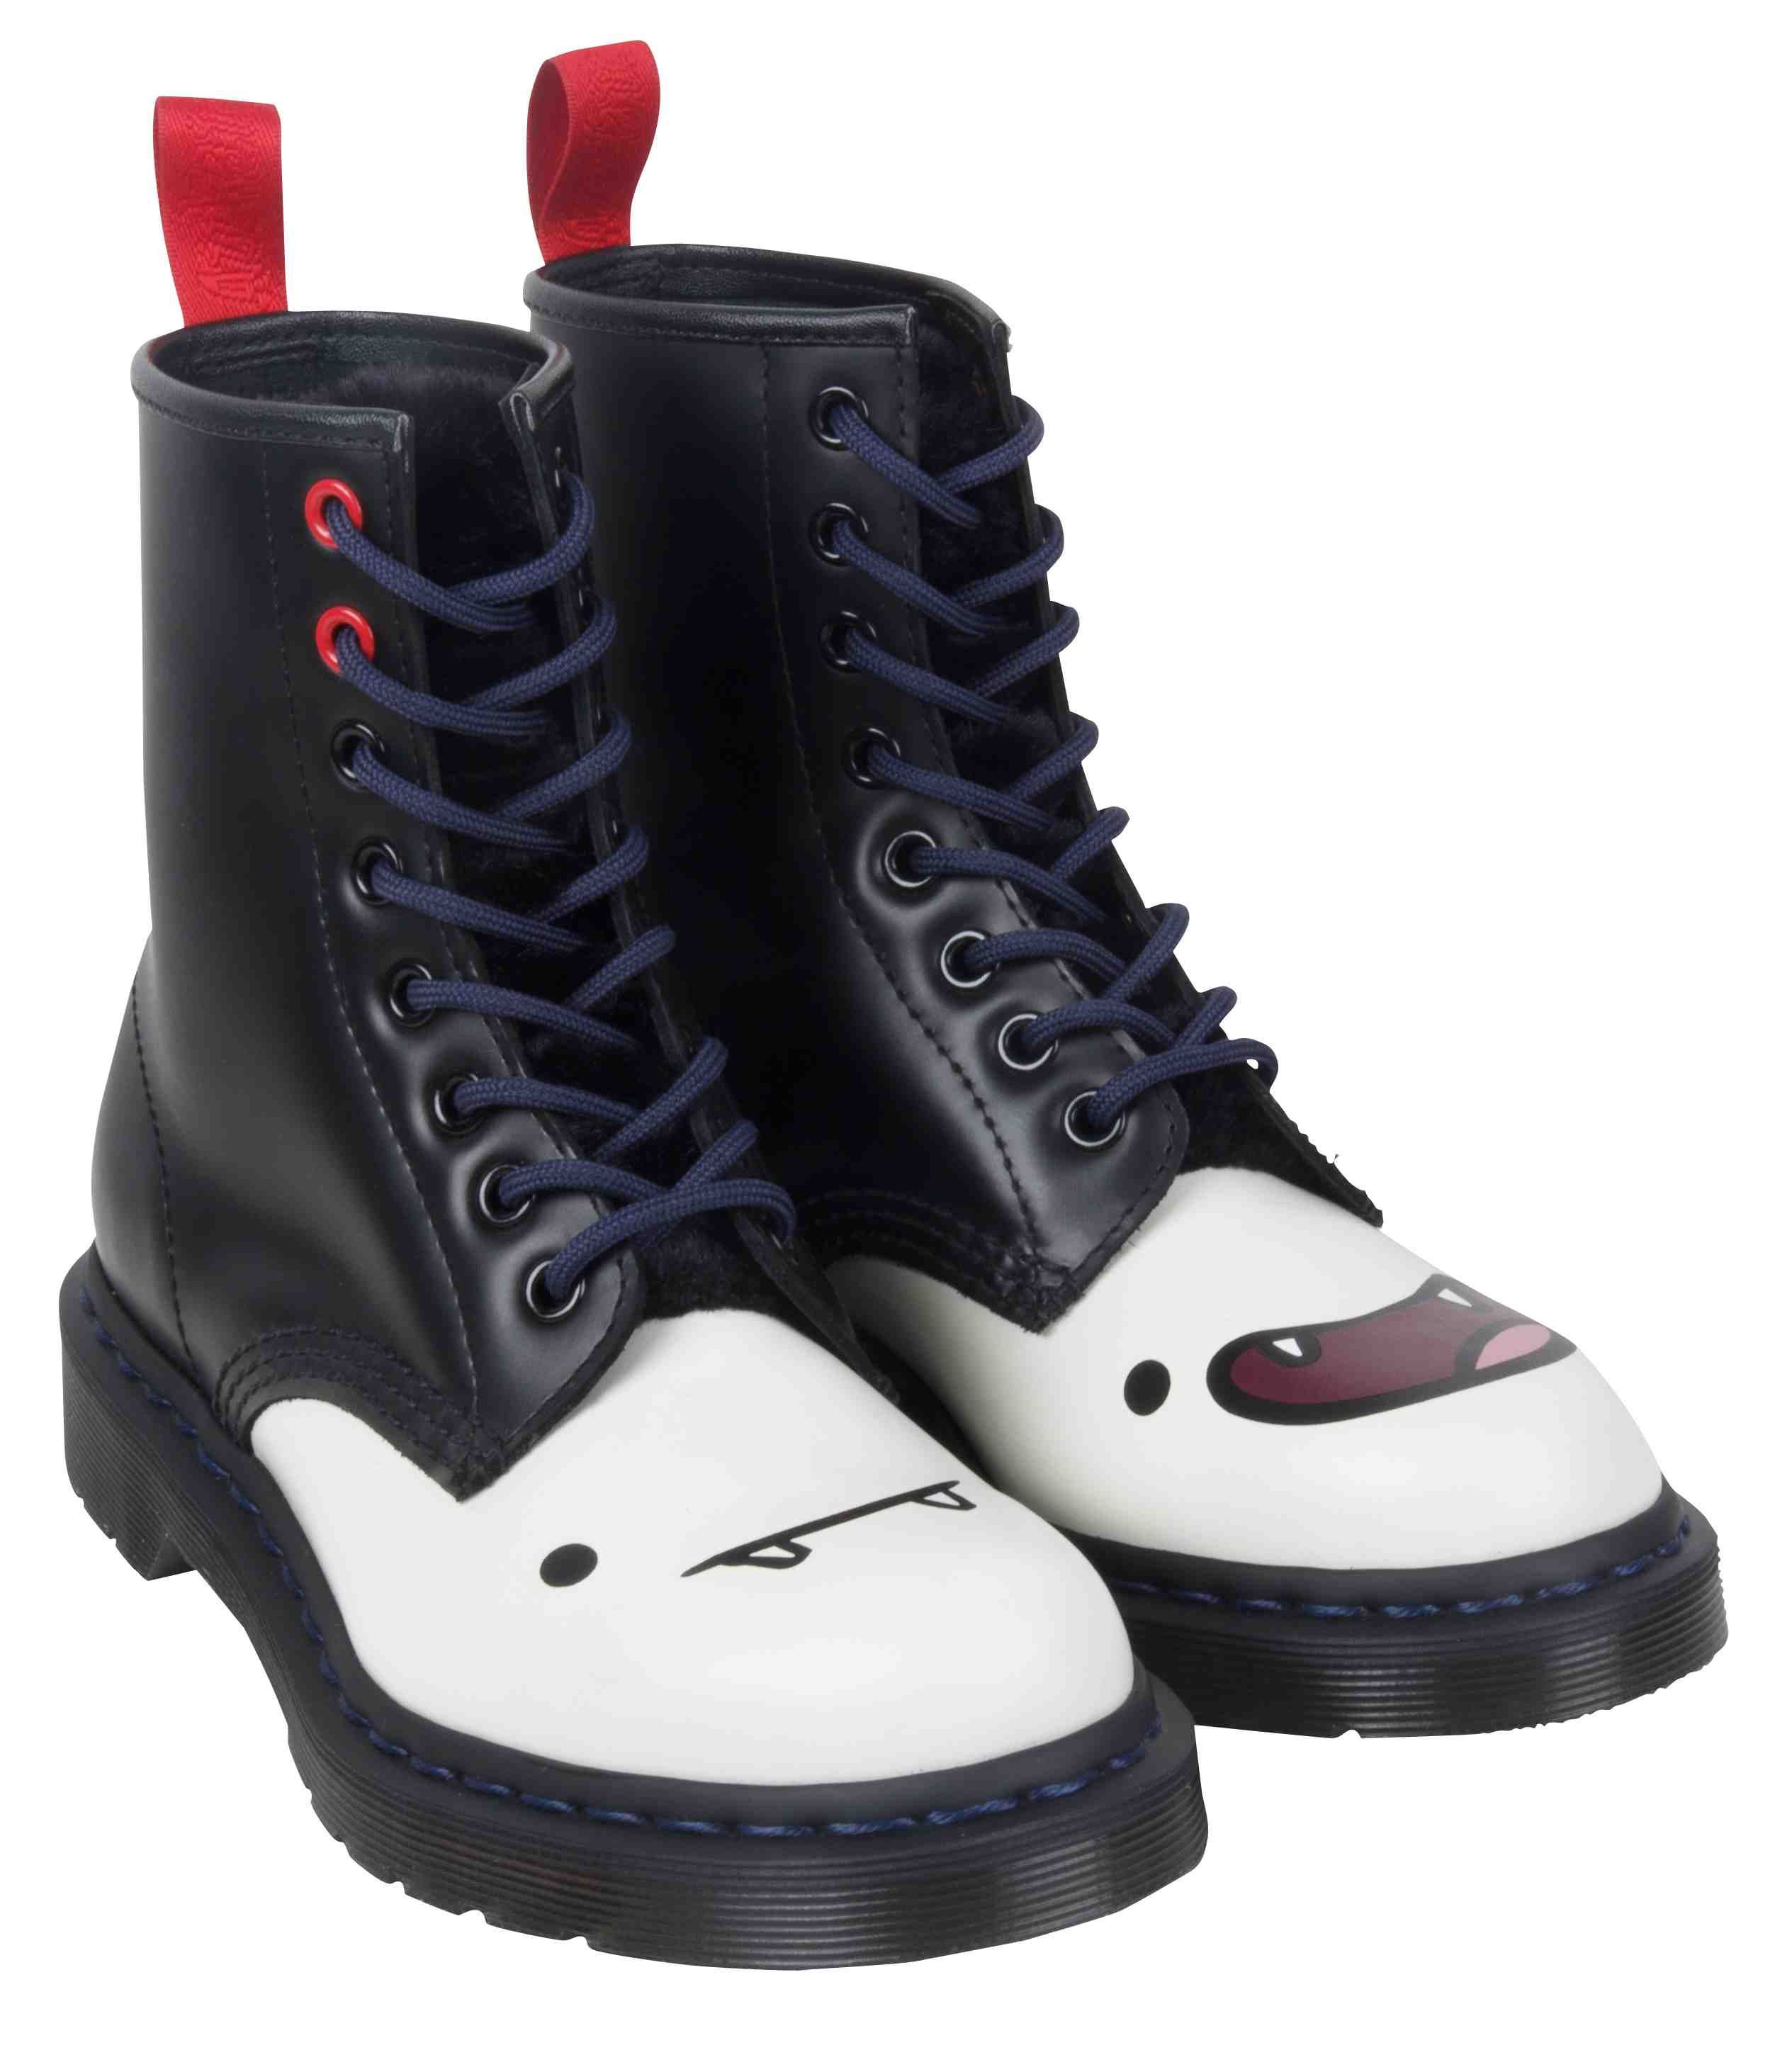 Martens adventure time Marceline boots Looking for these boots size 7 or 8  Dr.